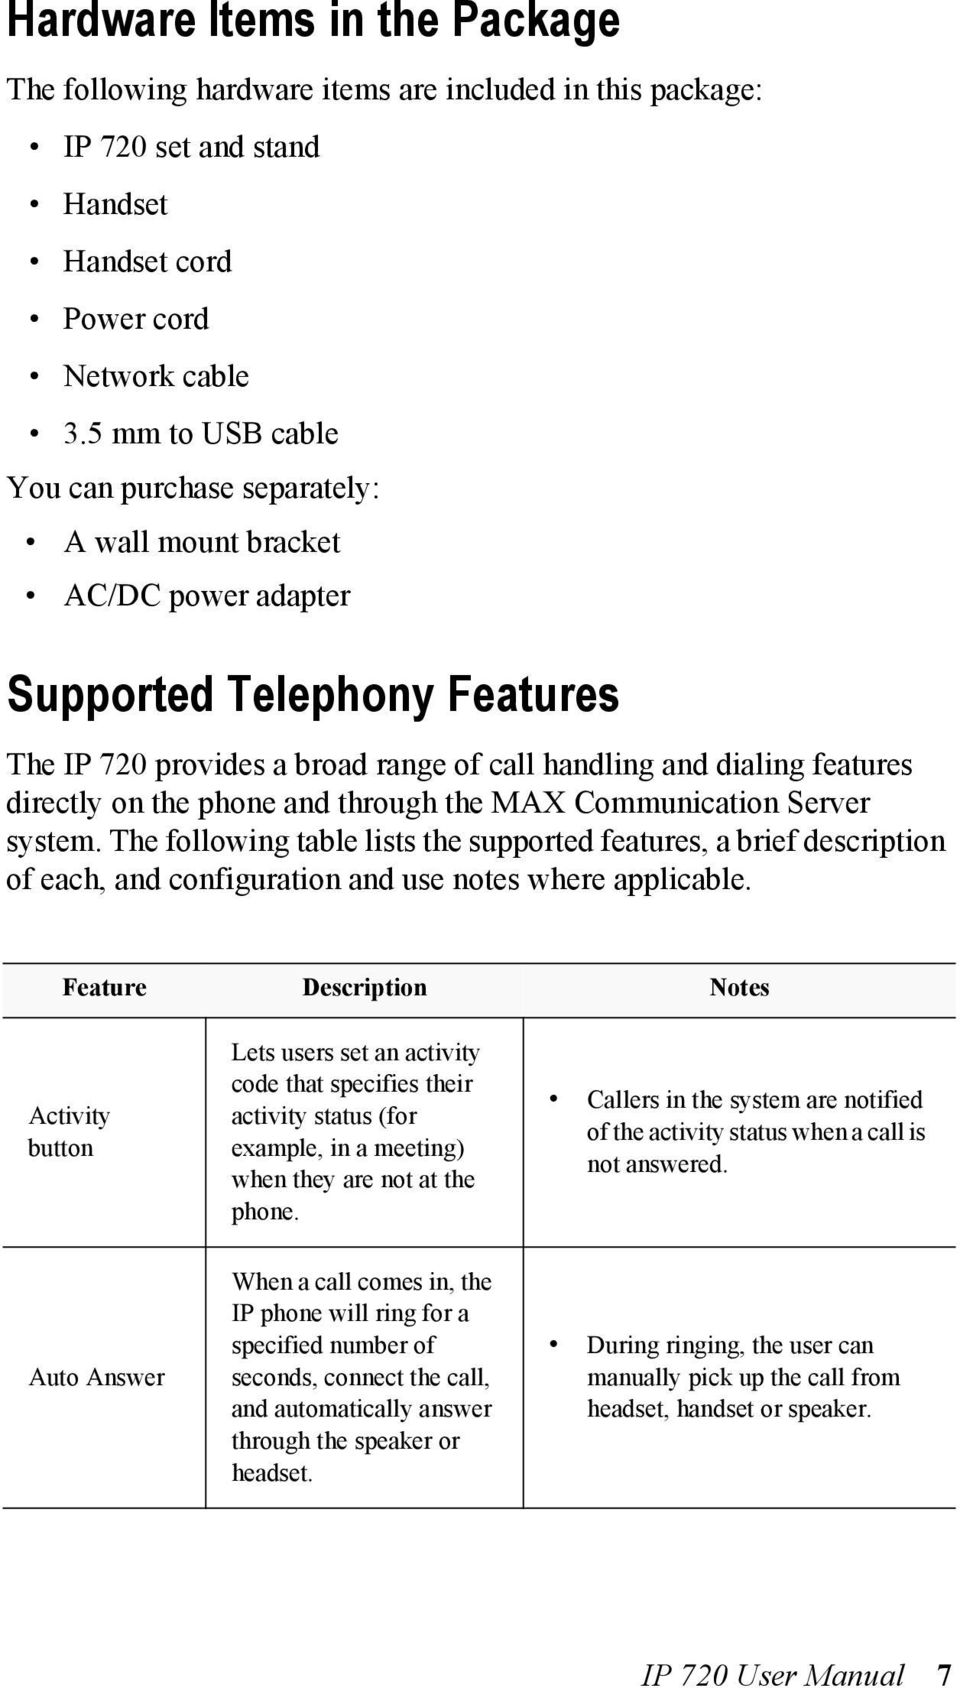 on the phone and through the MAX Communication Server system. The following table lists the supported features, a brief description of each, and configuration and use notes where applicable.